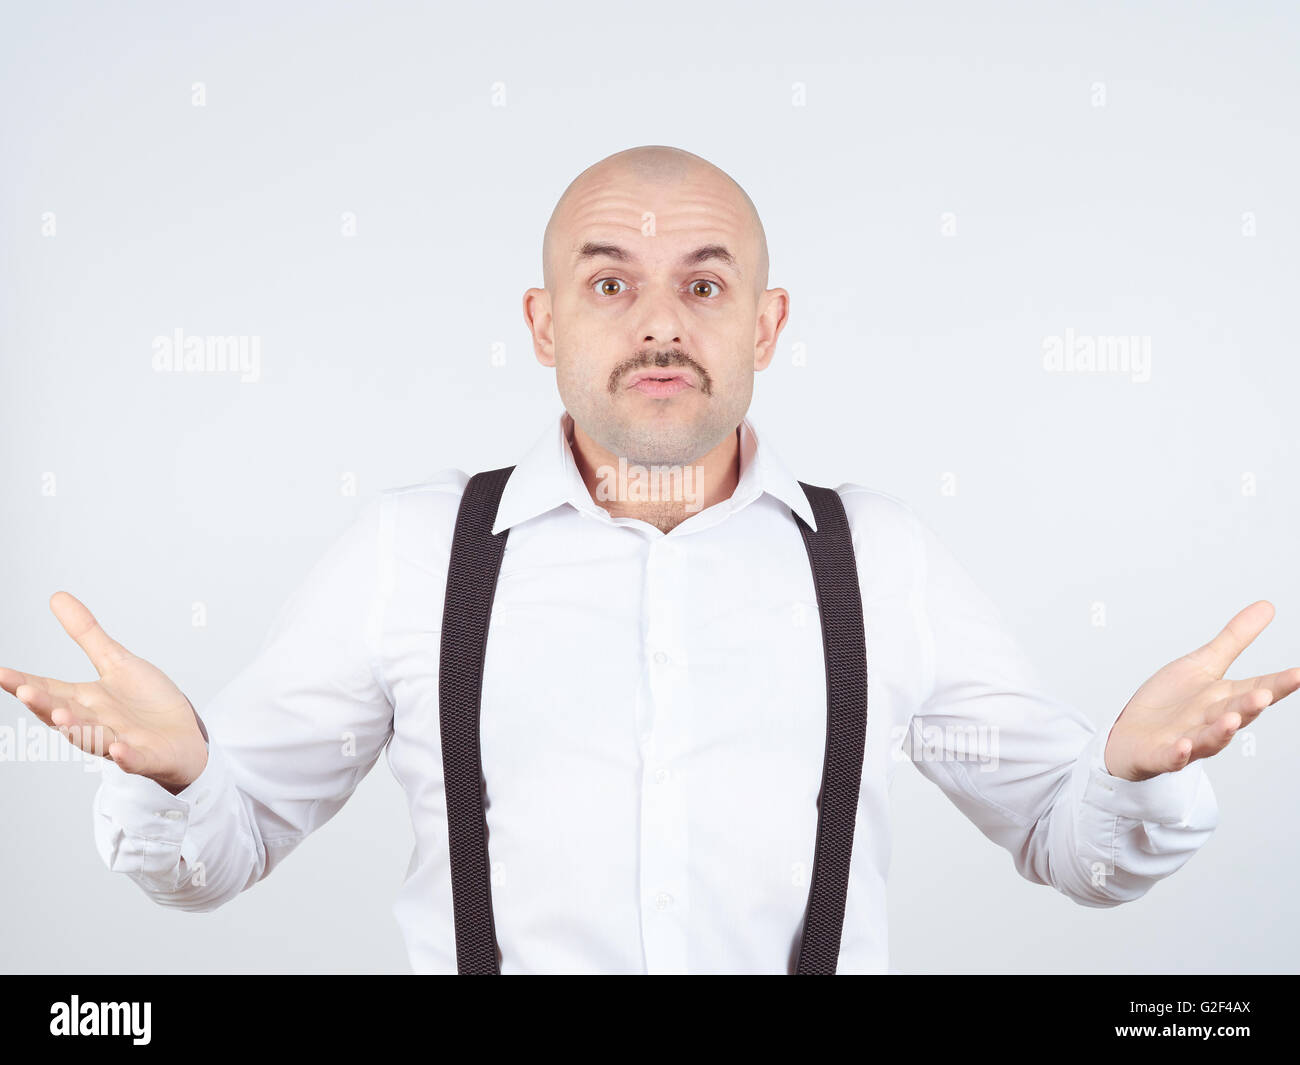 bald man shrugging shoulders I don't know gesture Isolated.  Human body language. - Stock Image